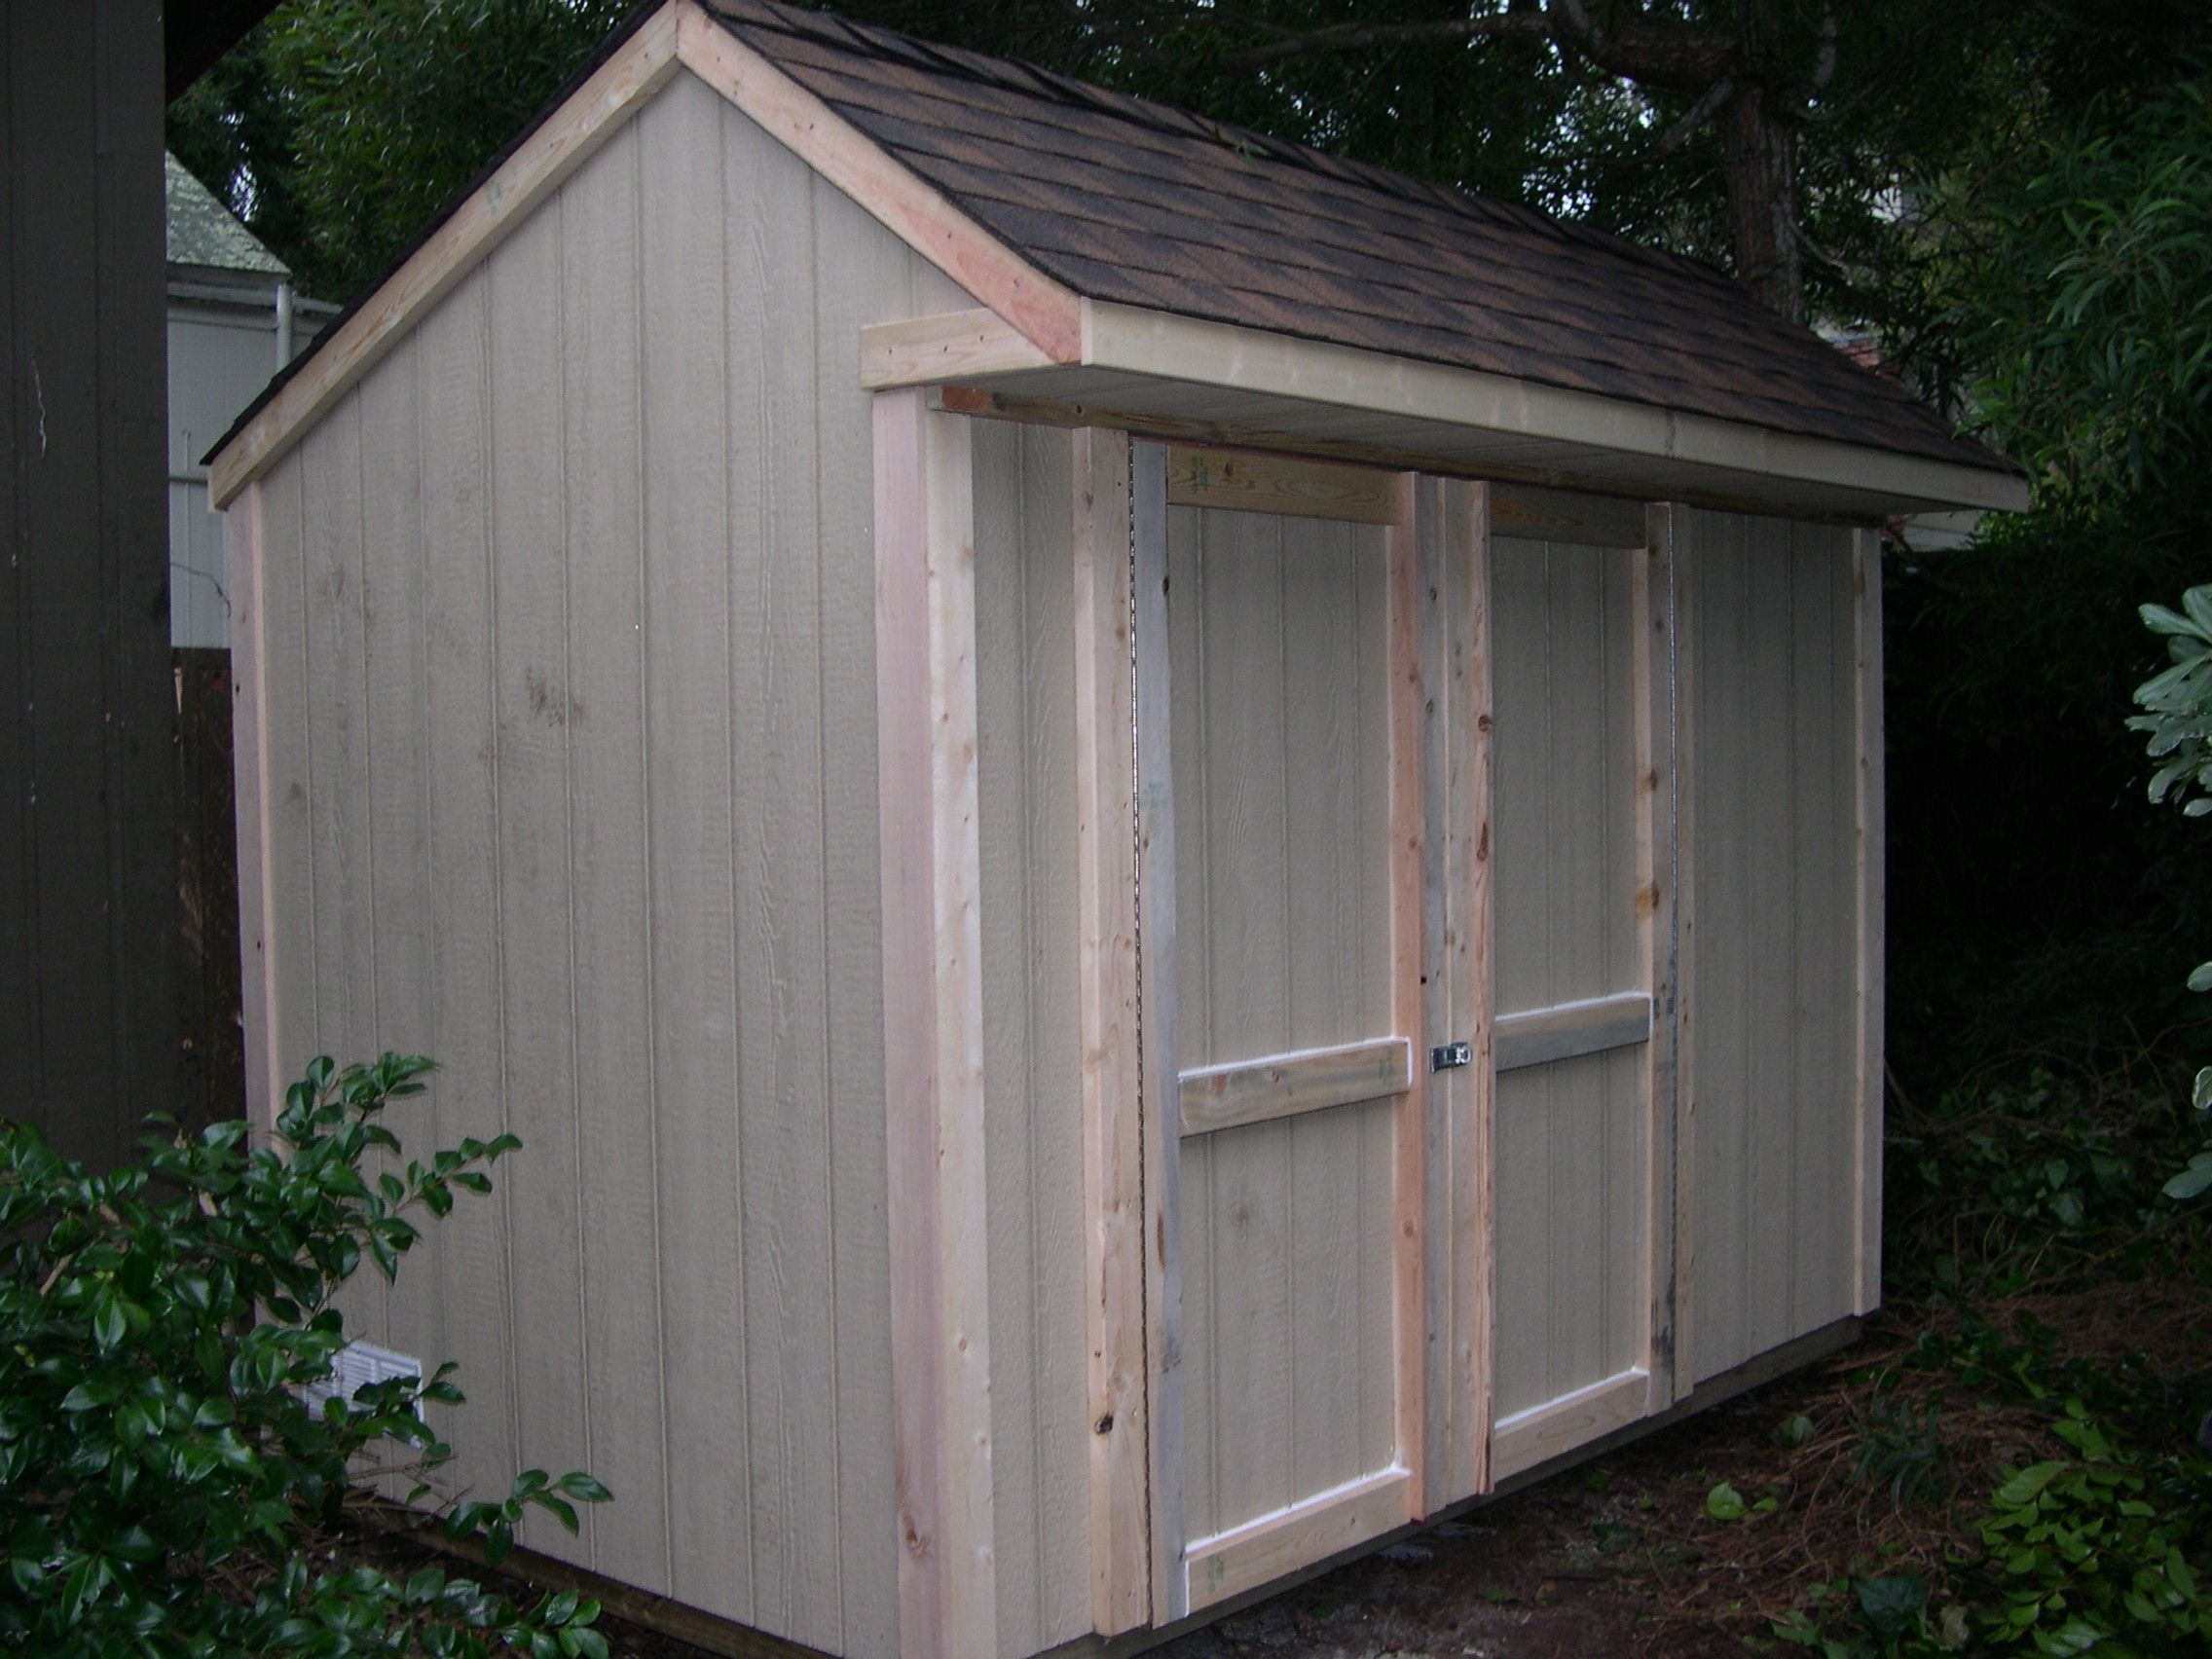 Great Custom Saltbox Shed Plans, 6 X 10 Shed, Detailed Building Plans